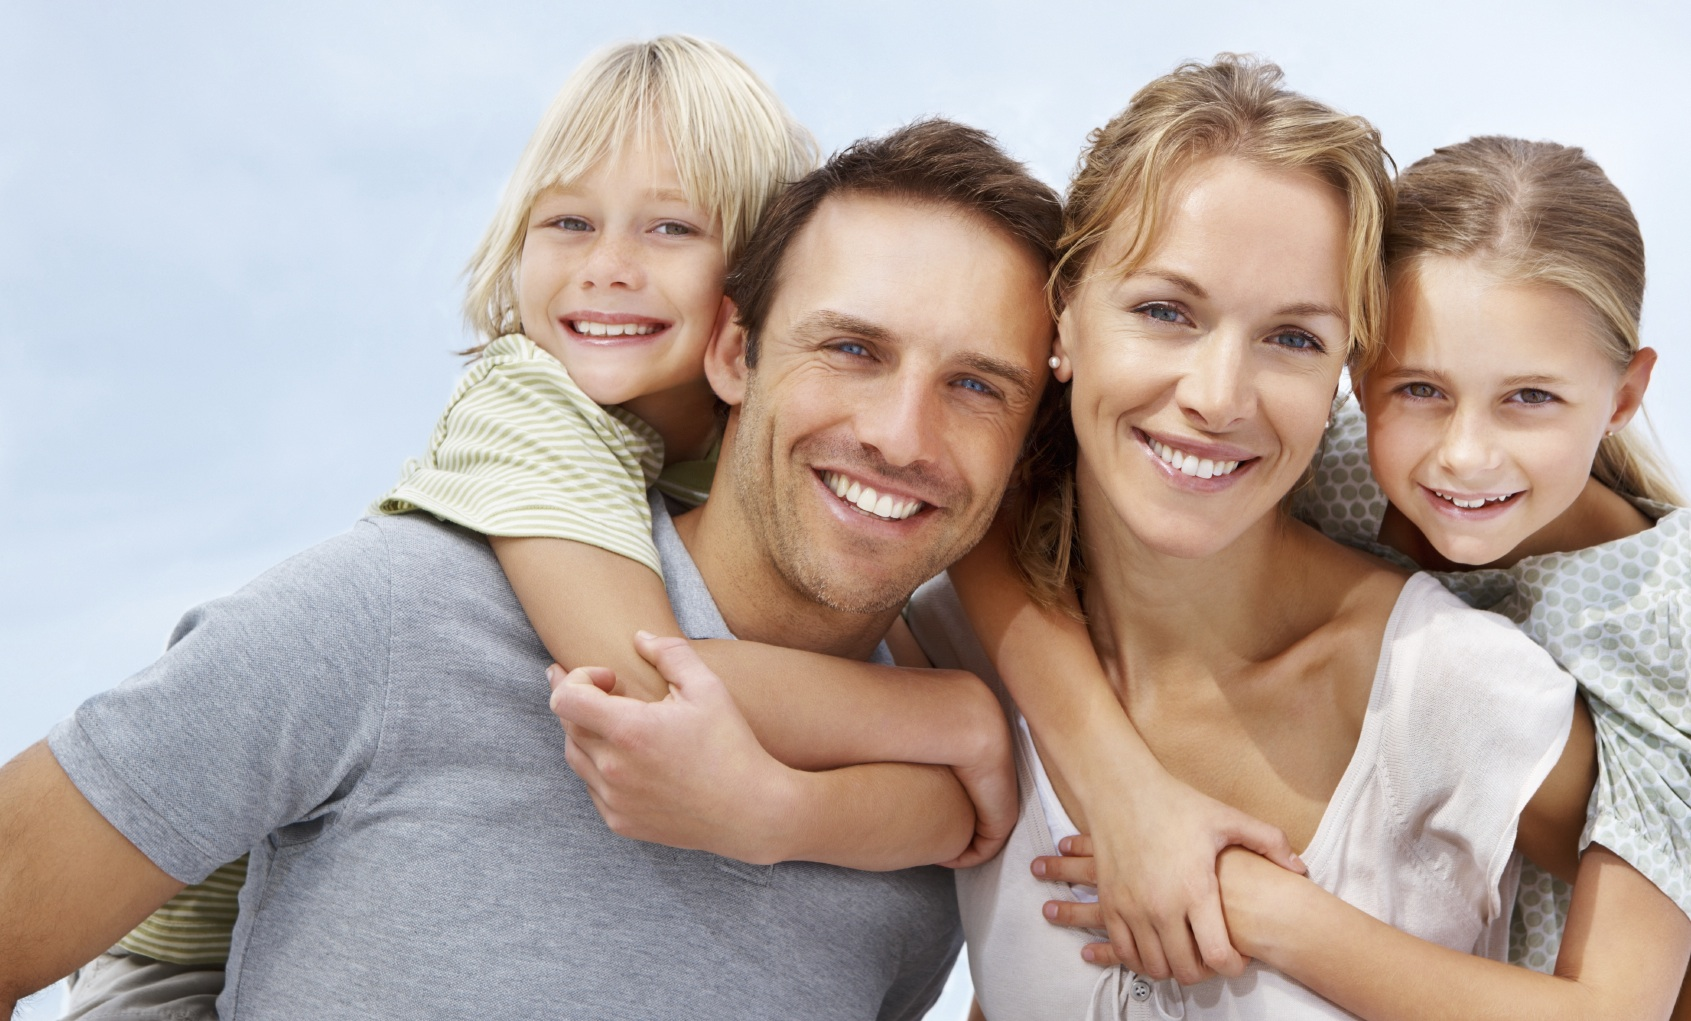 Portrait of a happy mature man and woman carrying kids on back